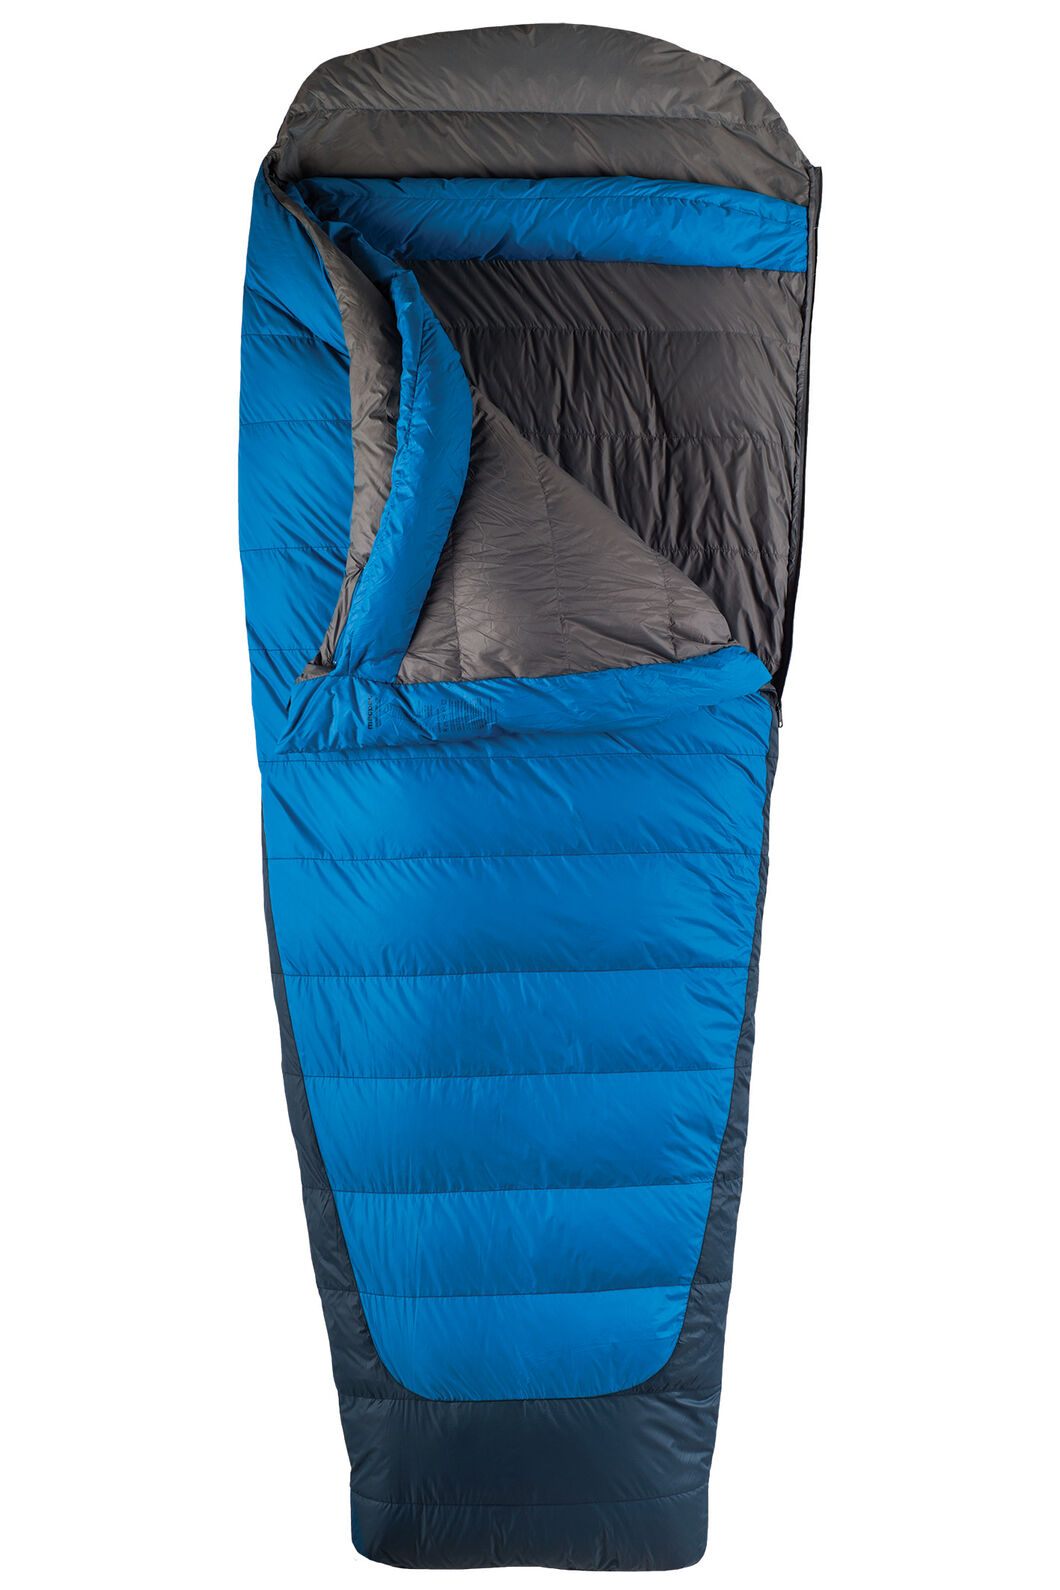 Macpac Escapade Down 500 Sleeping Bag - Standard, Classic Blue, hi-res